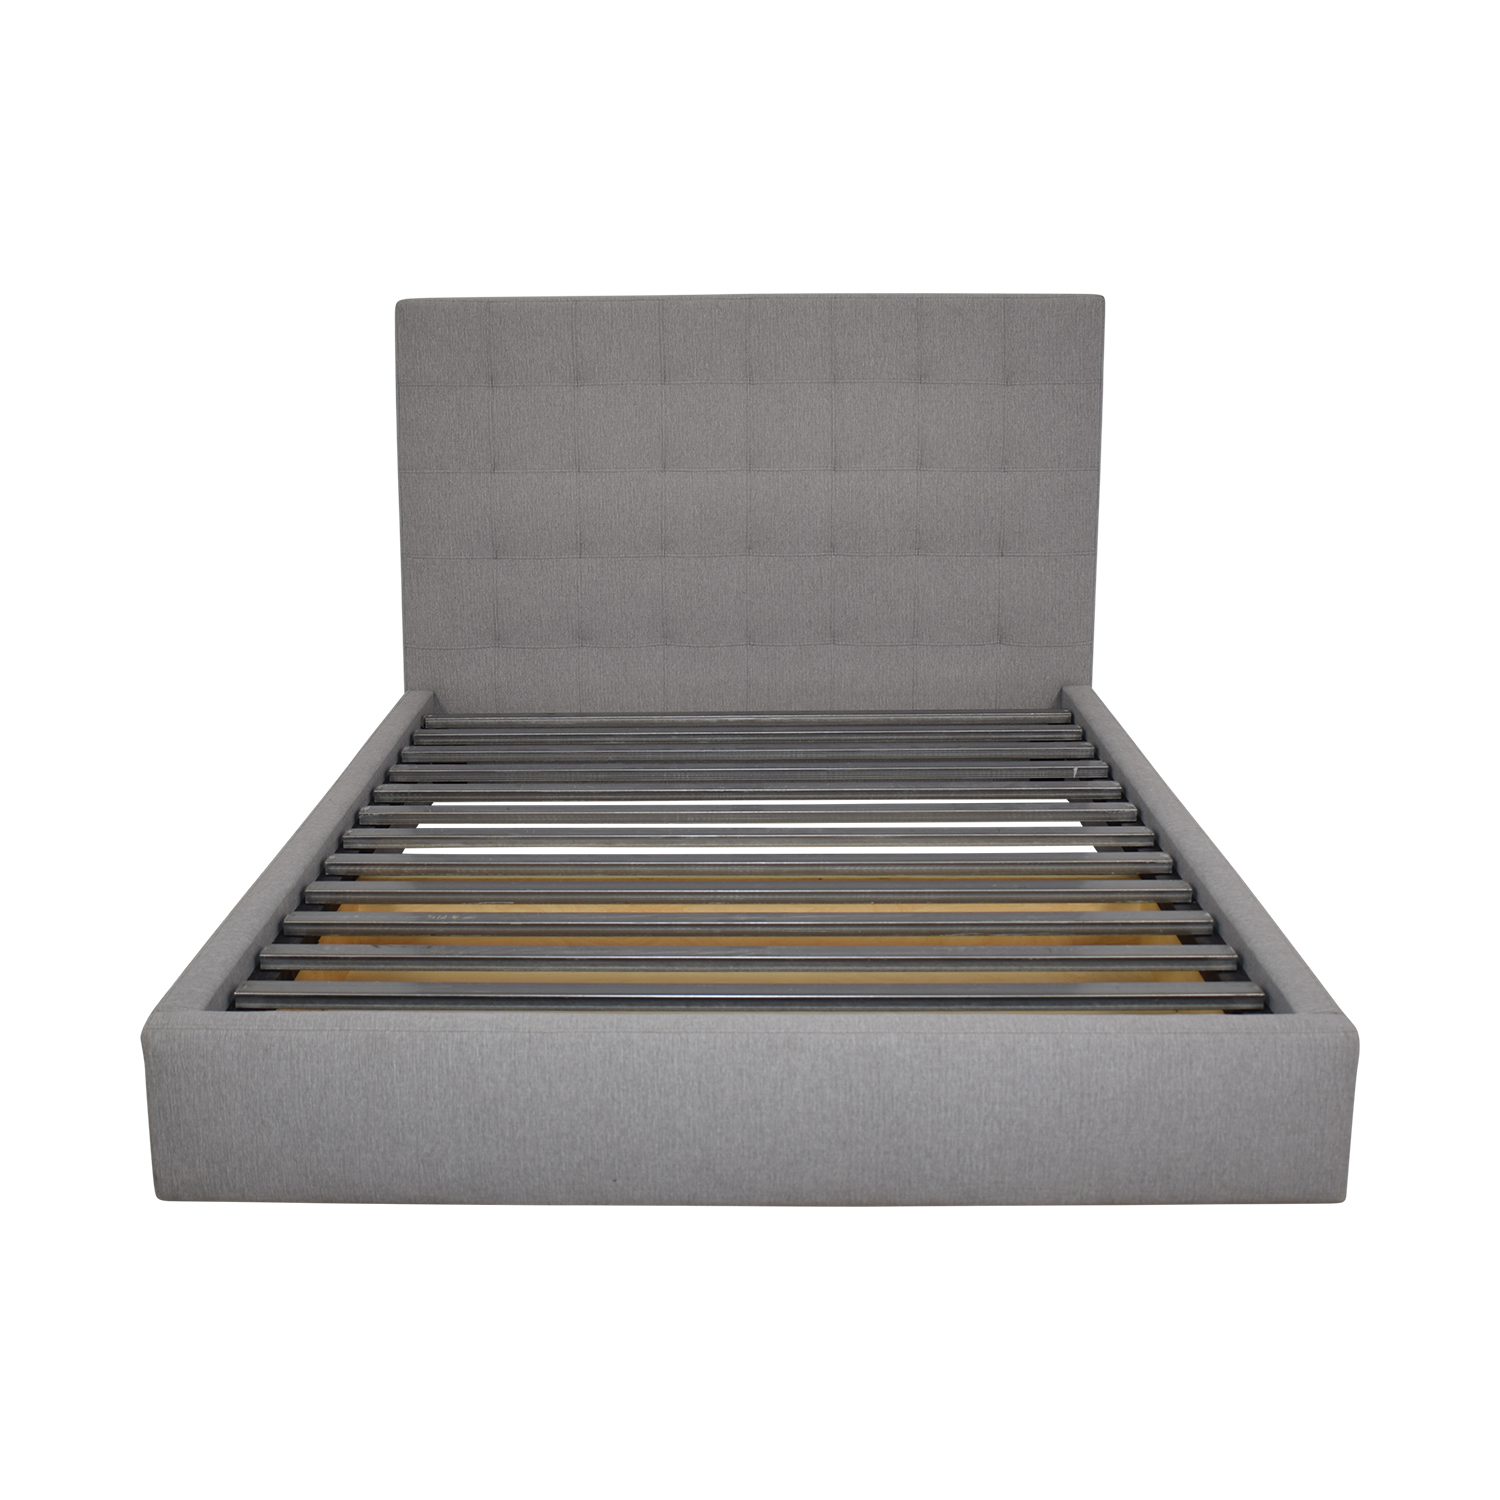 73 off room board room board avery upholstered bed with storage drawer beds